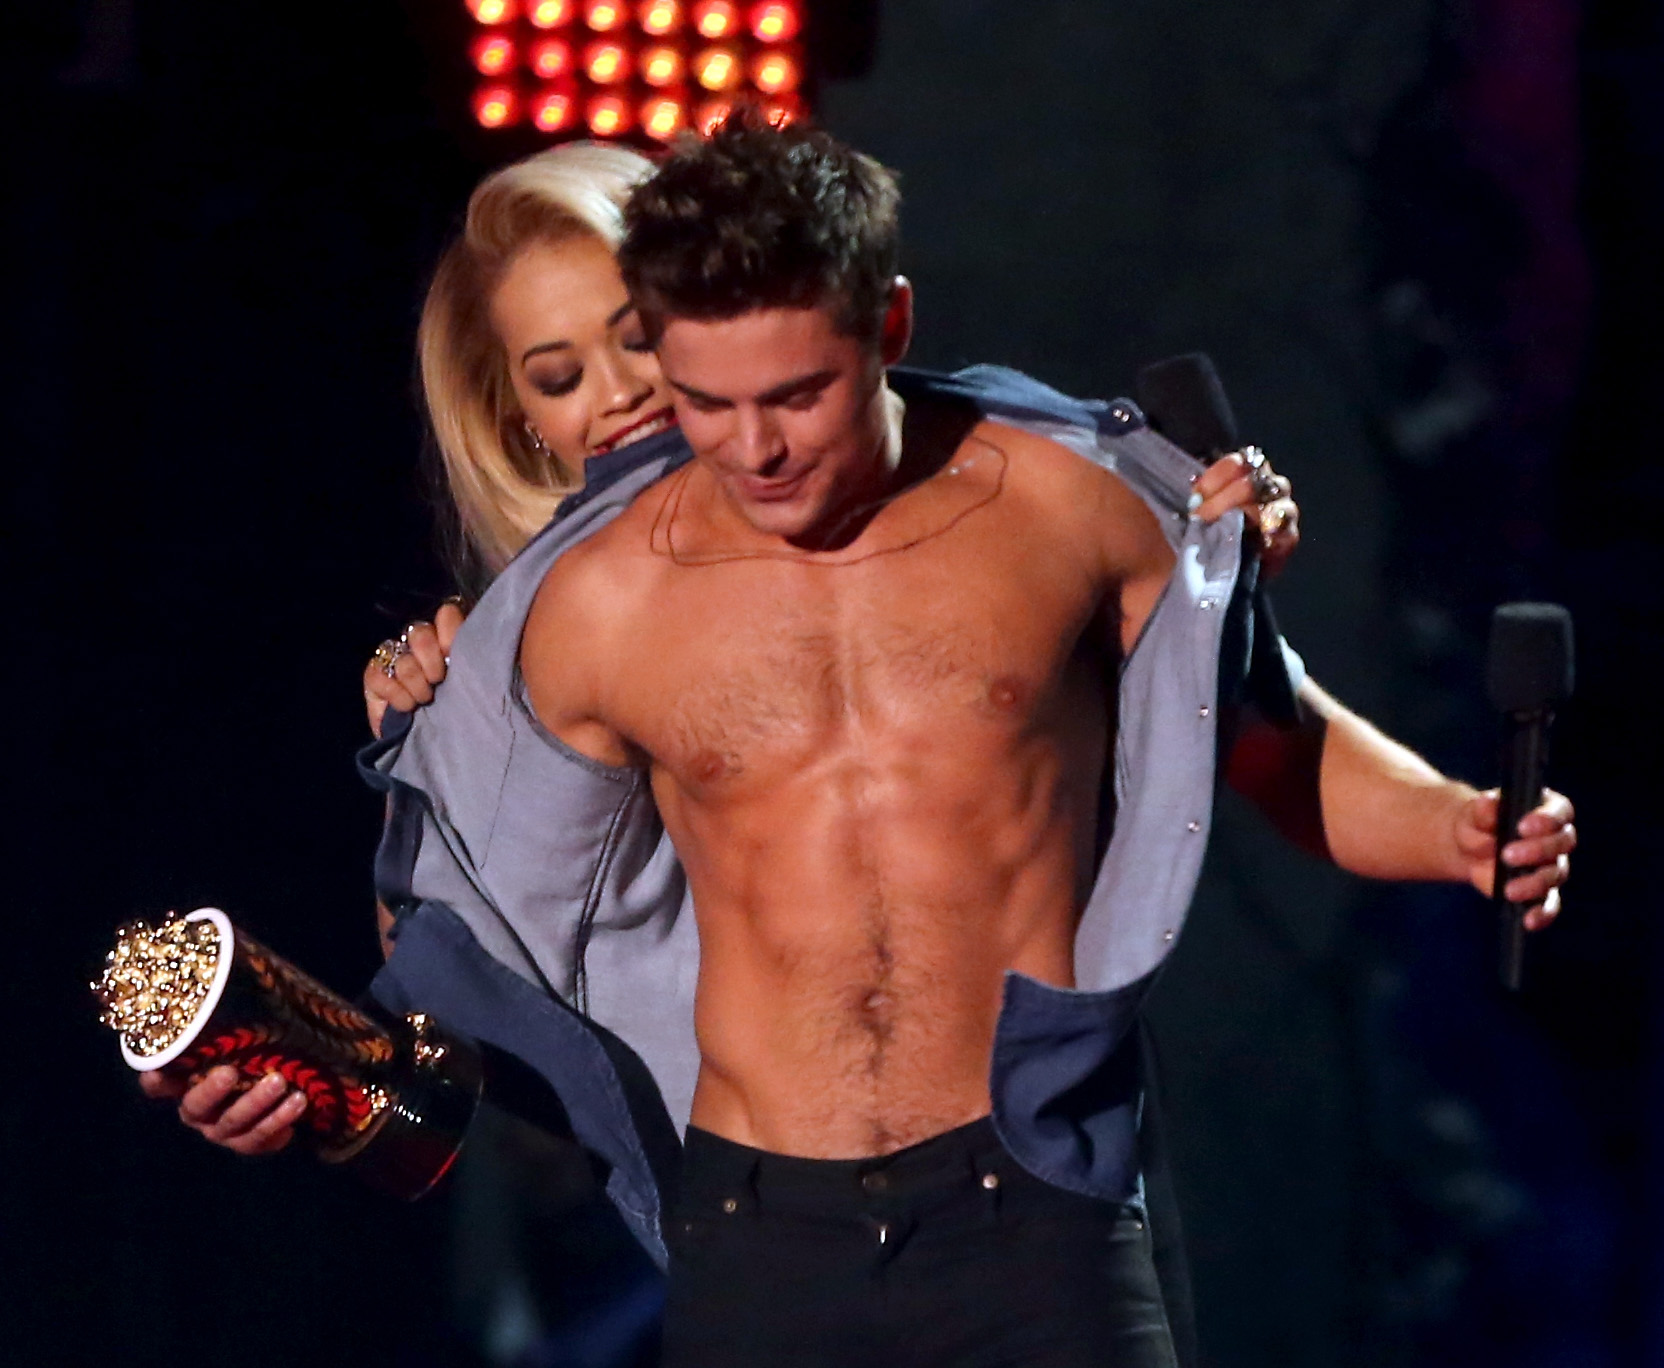 By 2014, his abs and pecs (and everything else, for that matter) were sculpted for prime time. We'll never forget when his shirt came off at the 2014 MTV Movie Awards.